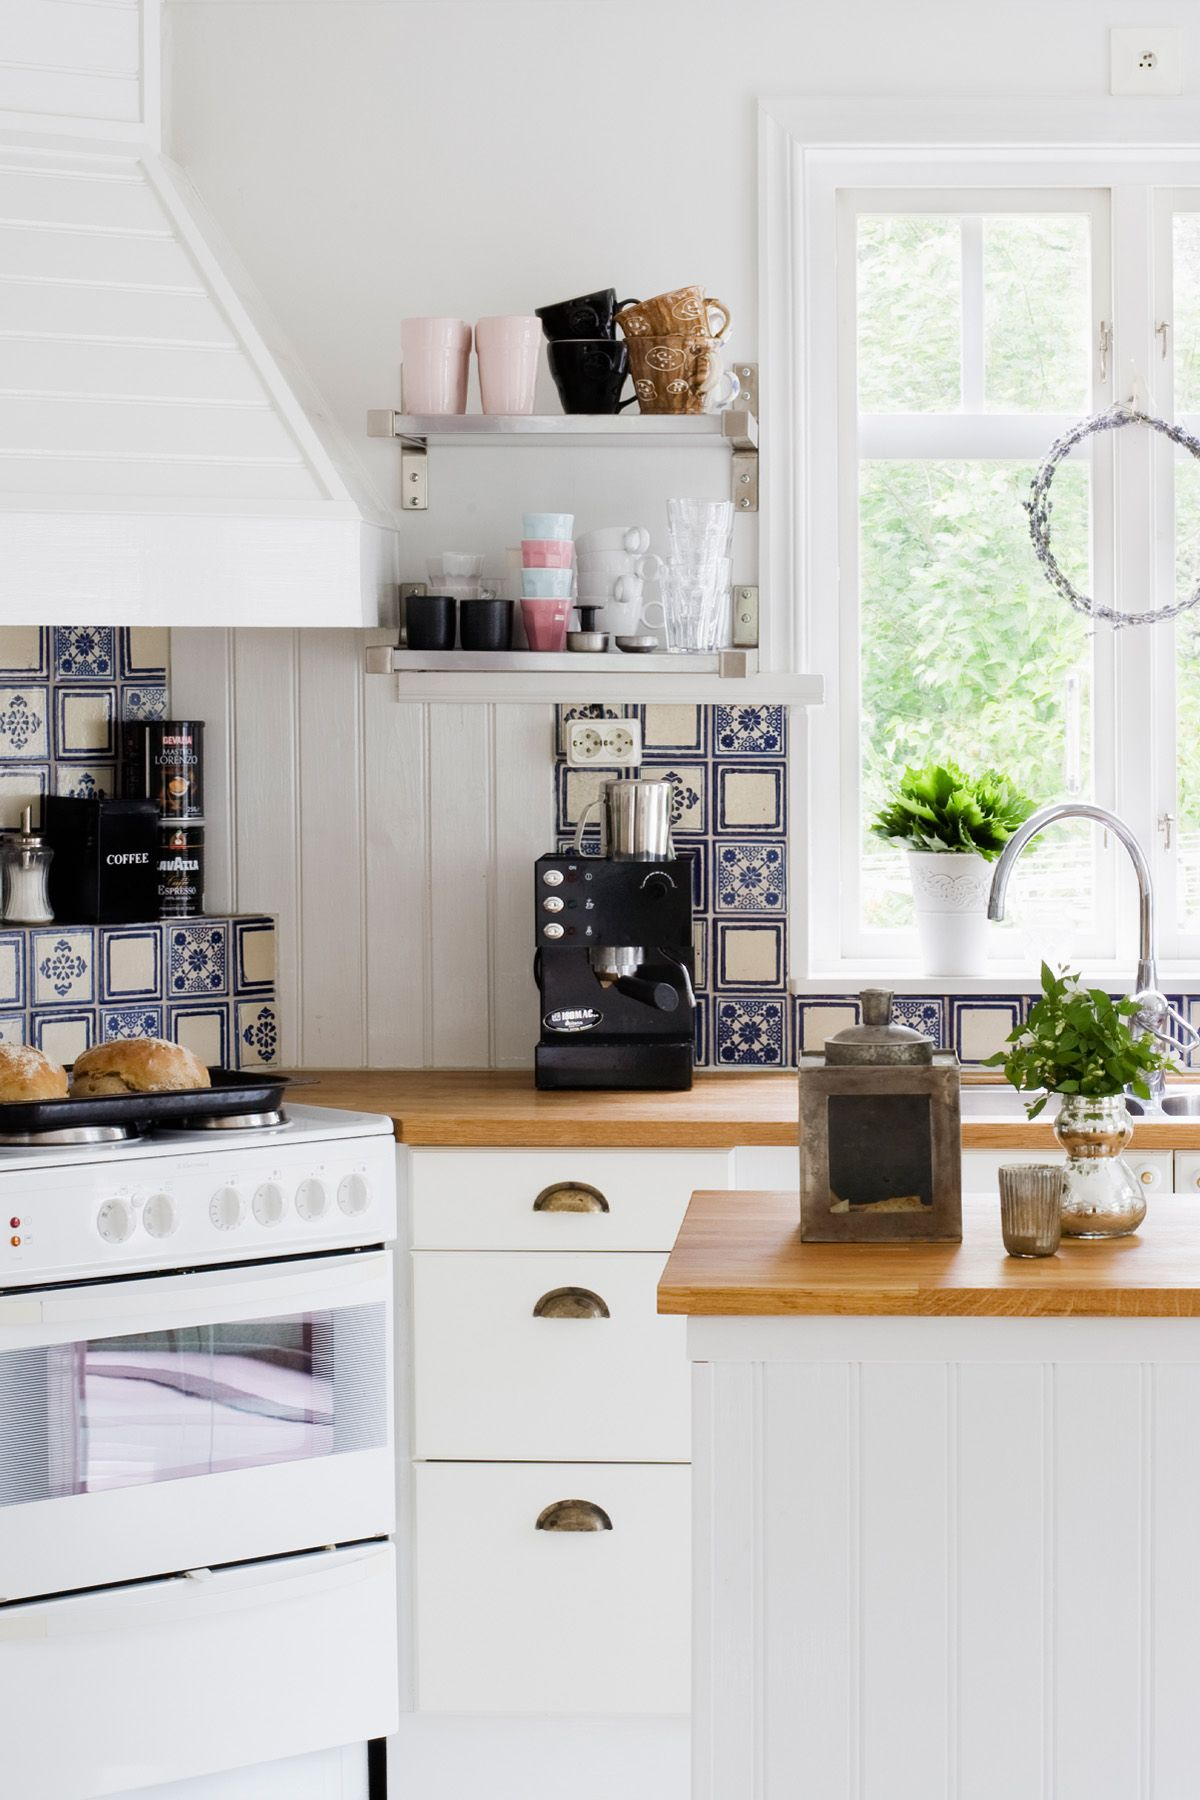 15 Kitchen Trends Designers Never Want to See Again - Kitchen Trends ...